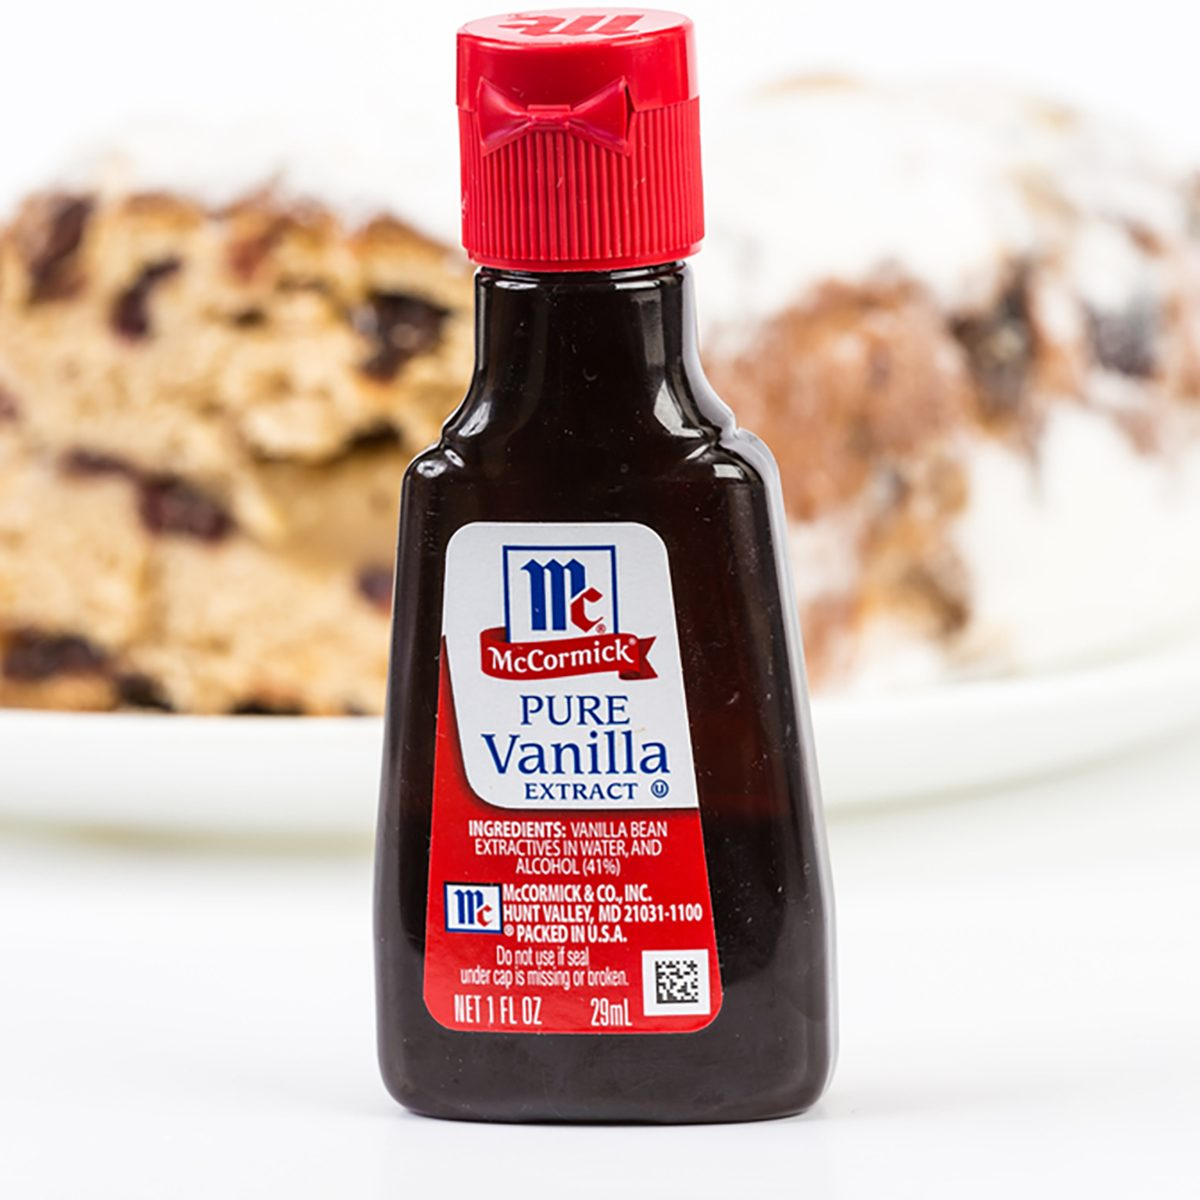 Small bottle of McCormick Pure Vanilla Extract with baked cake in background. Horizontal with copy space.